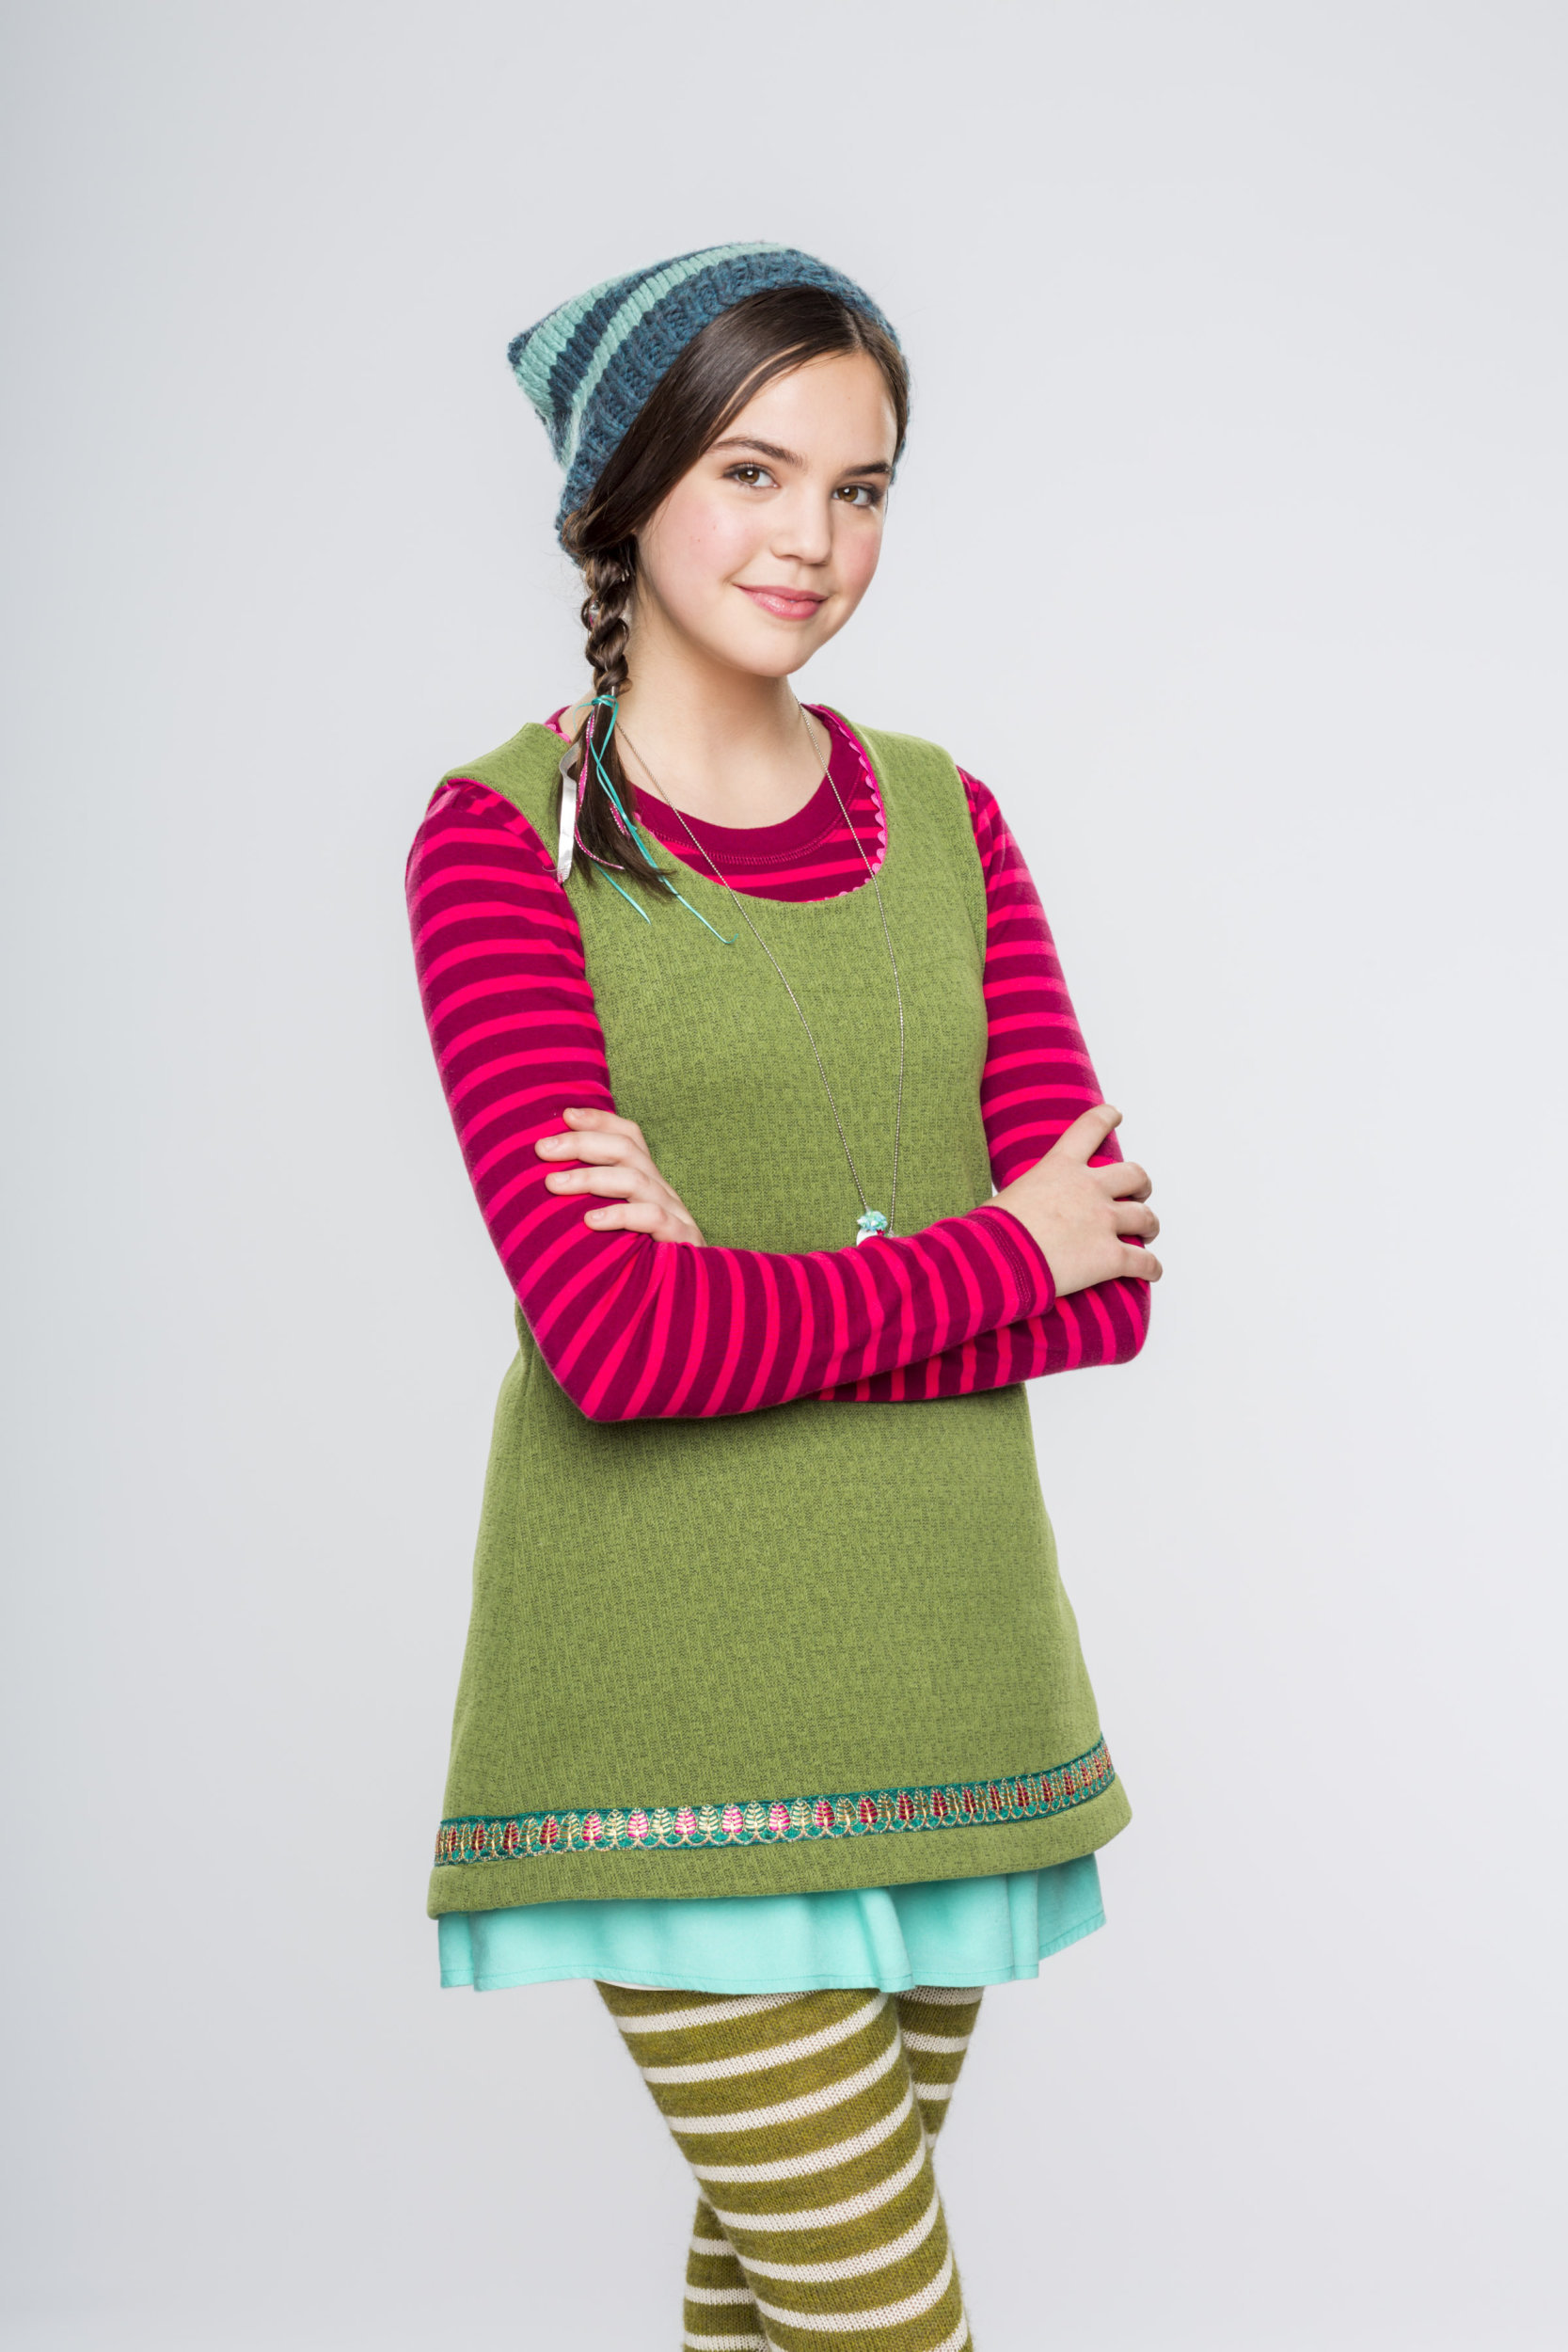 Bailee Madison as Clementine on Northpole: Open for Christmas ...